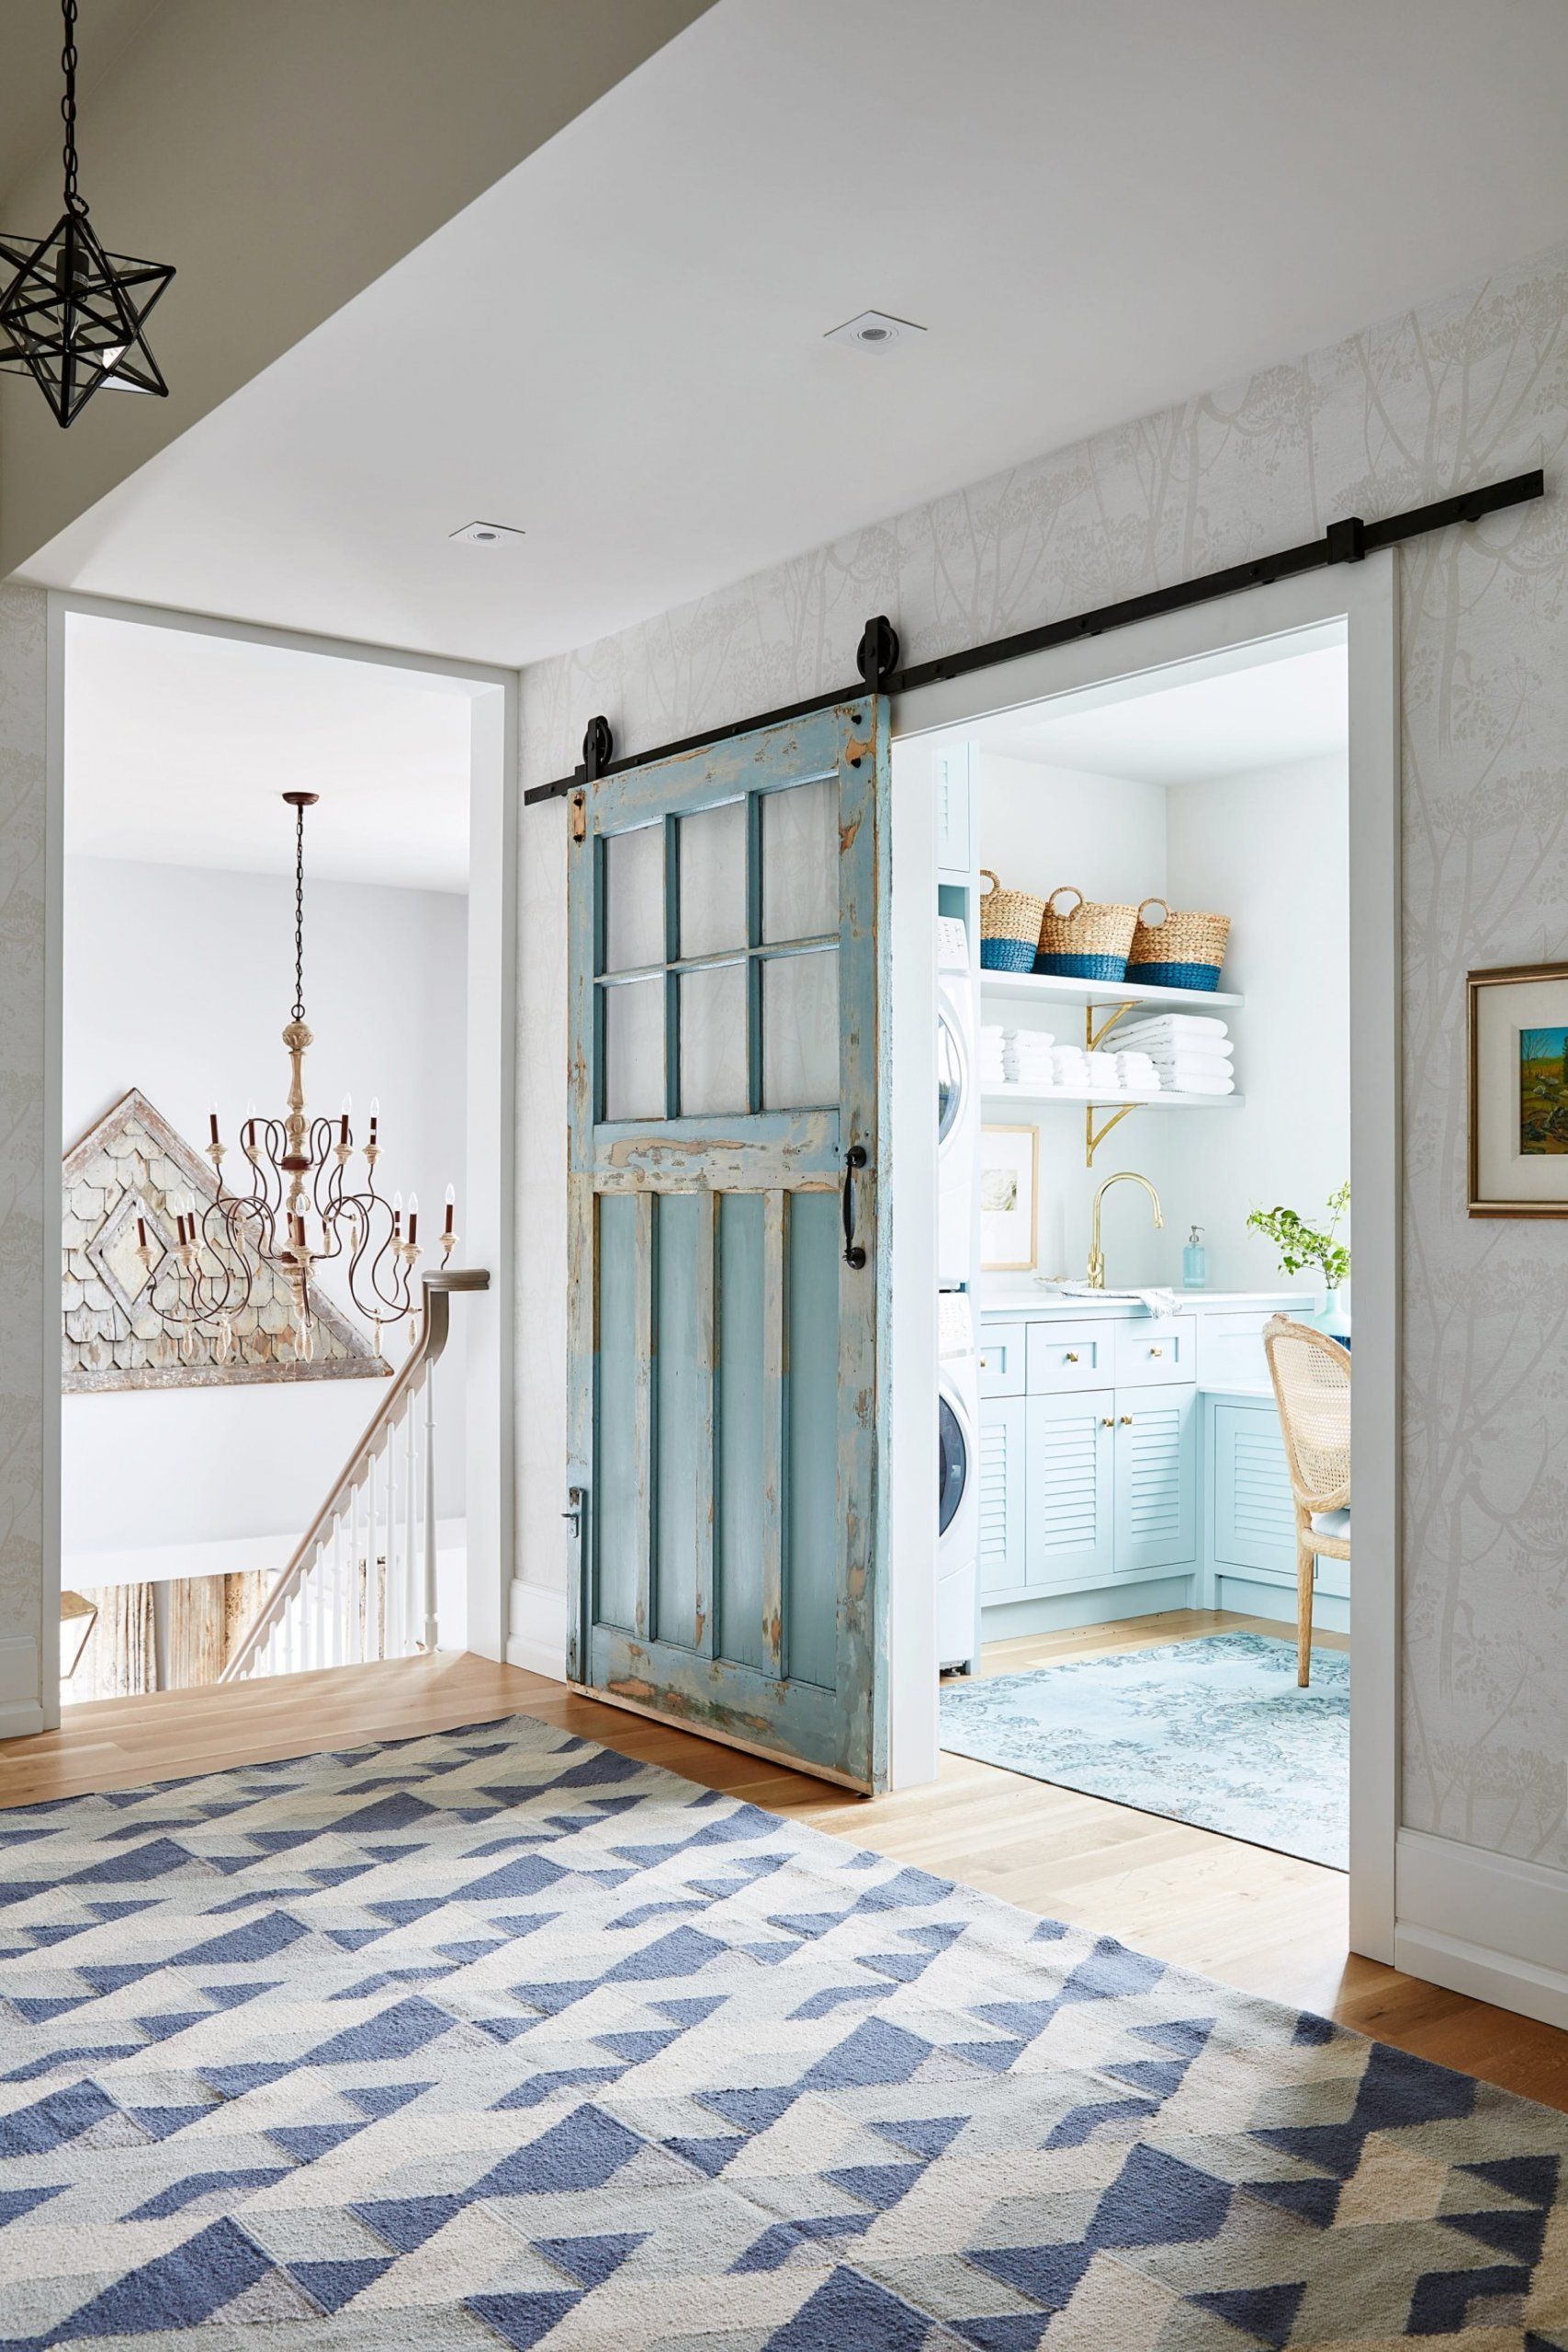 Old blue sliding door and chandelier with light bulbs